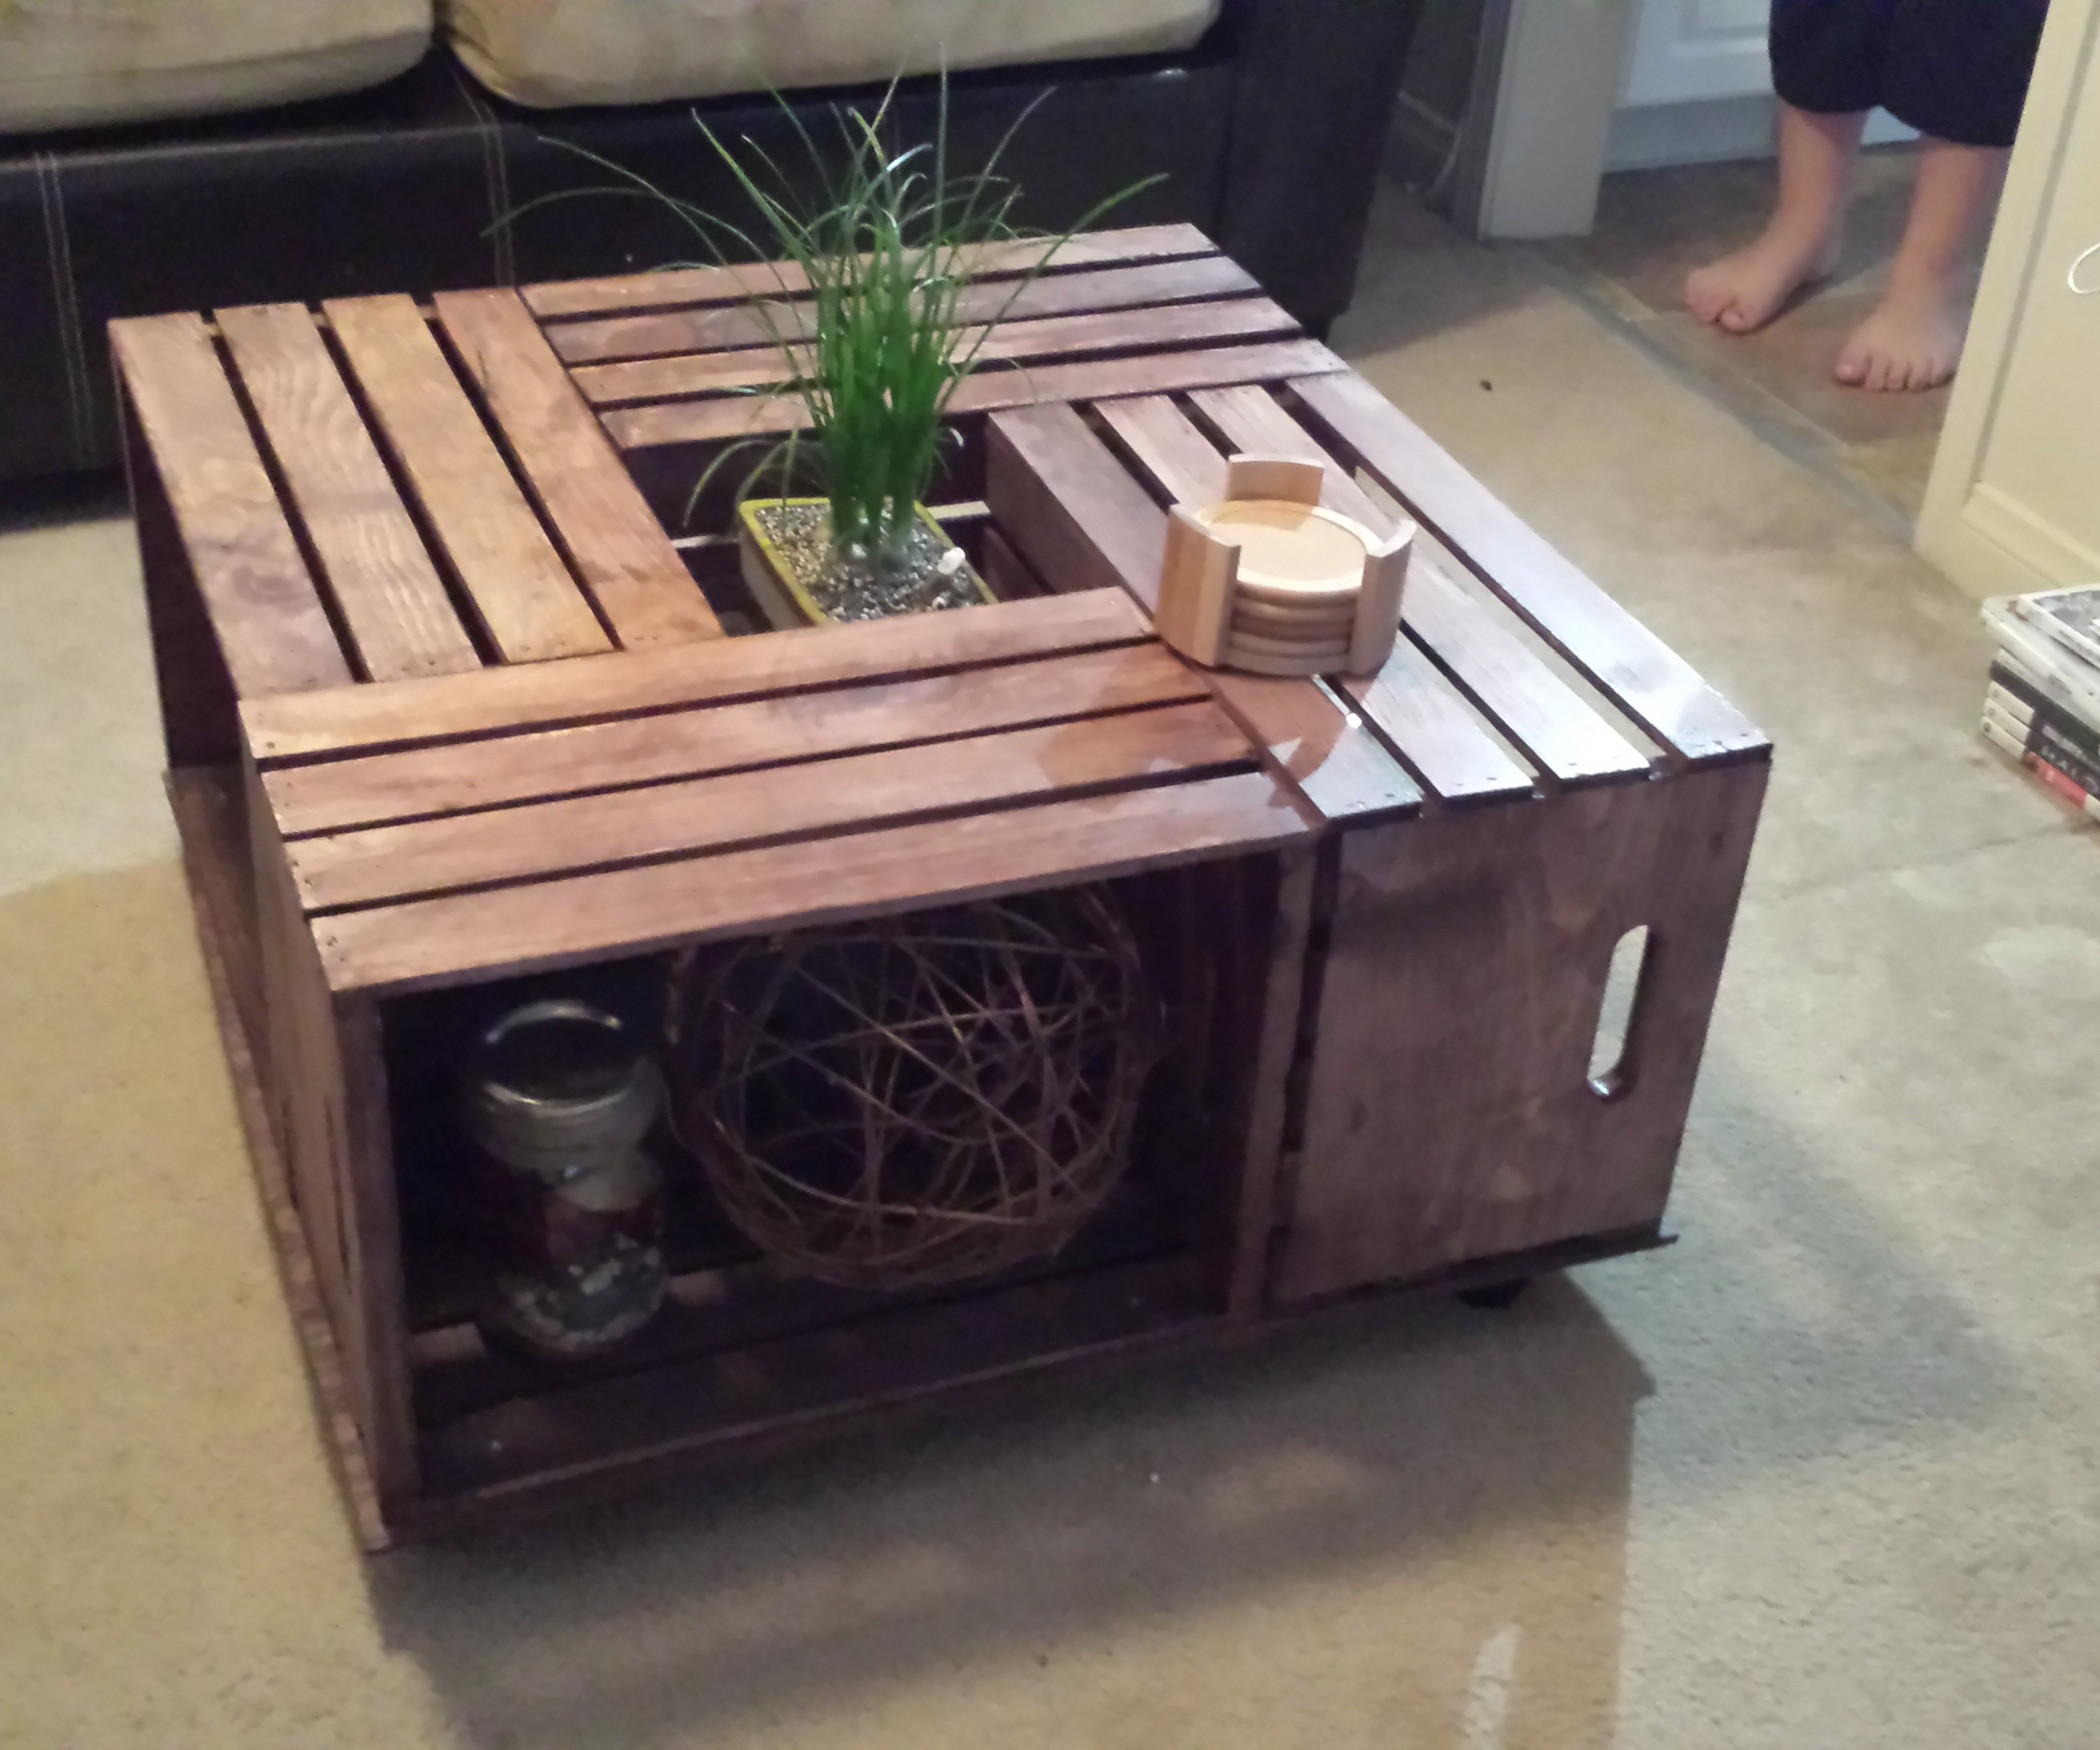 Best ideas about Wood Crate Coffee Table . Save or Pin Crate Coffee Table Now.